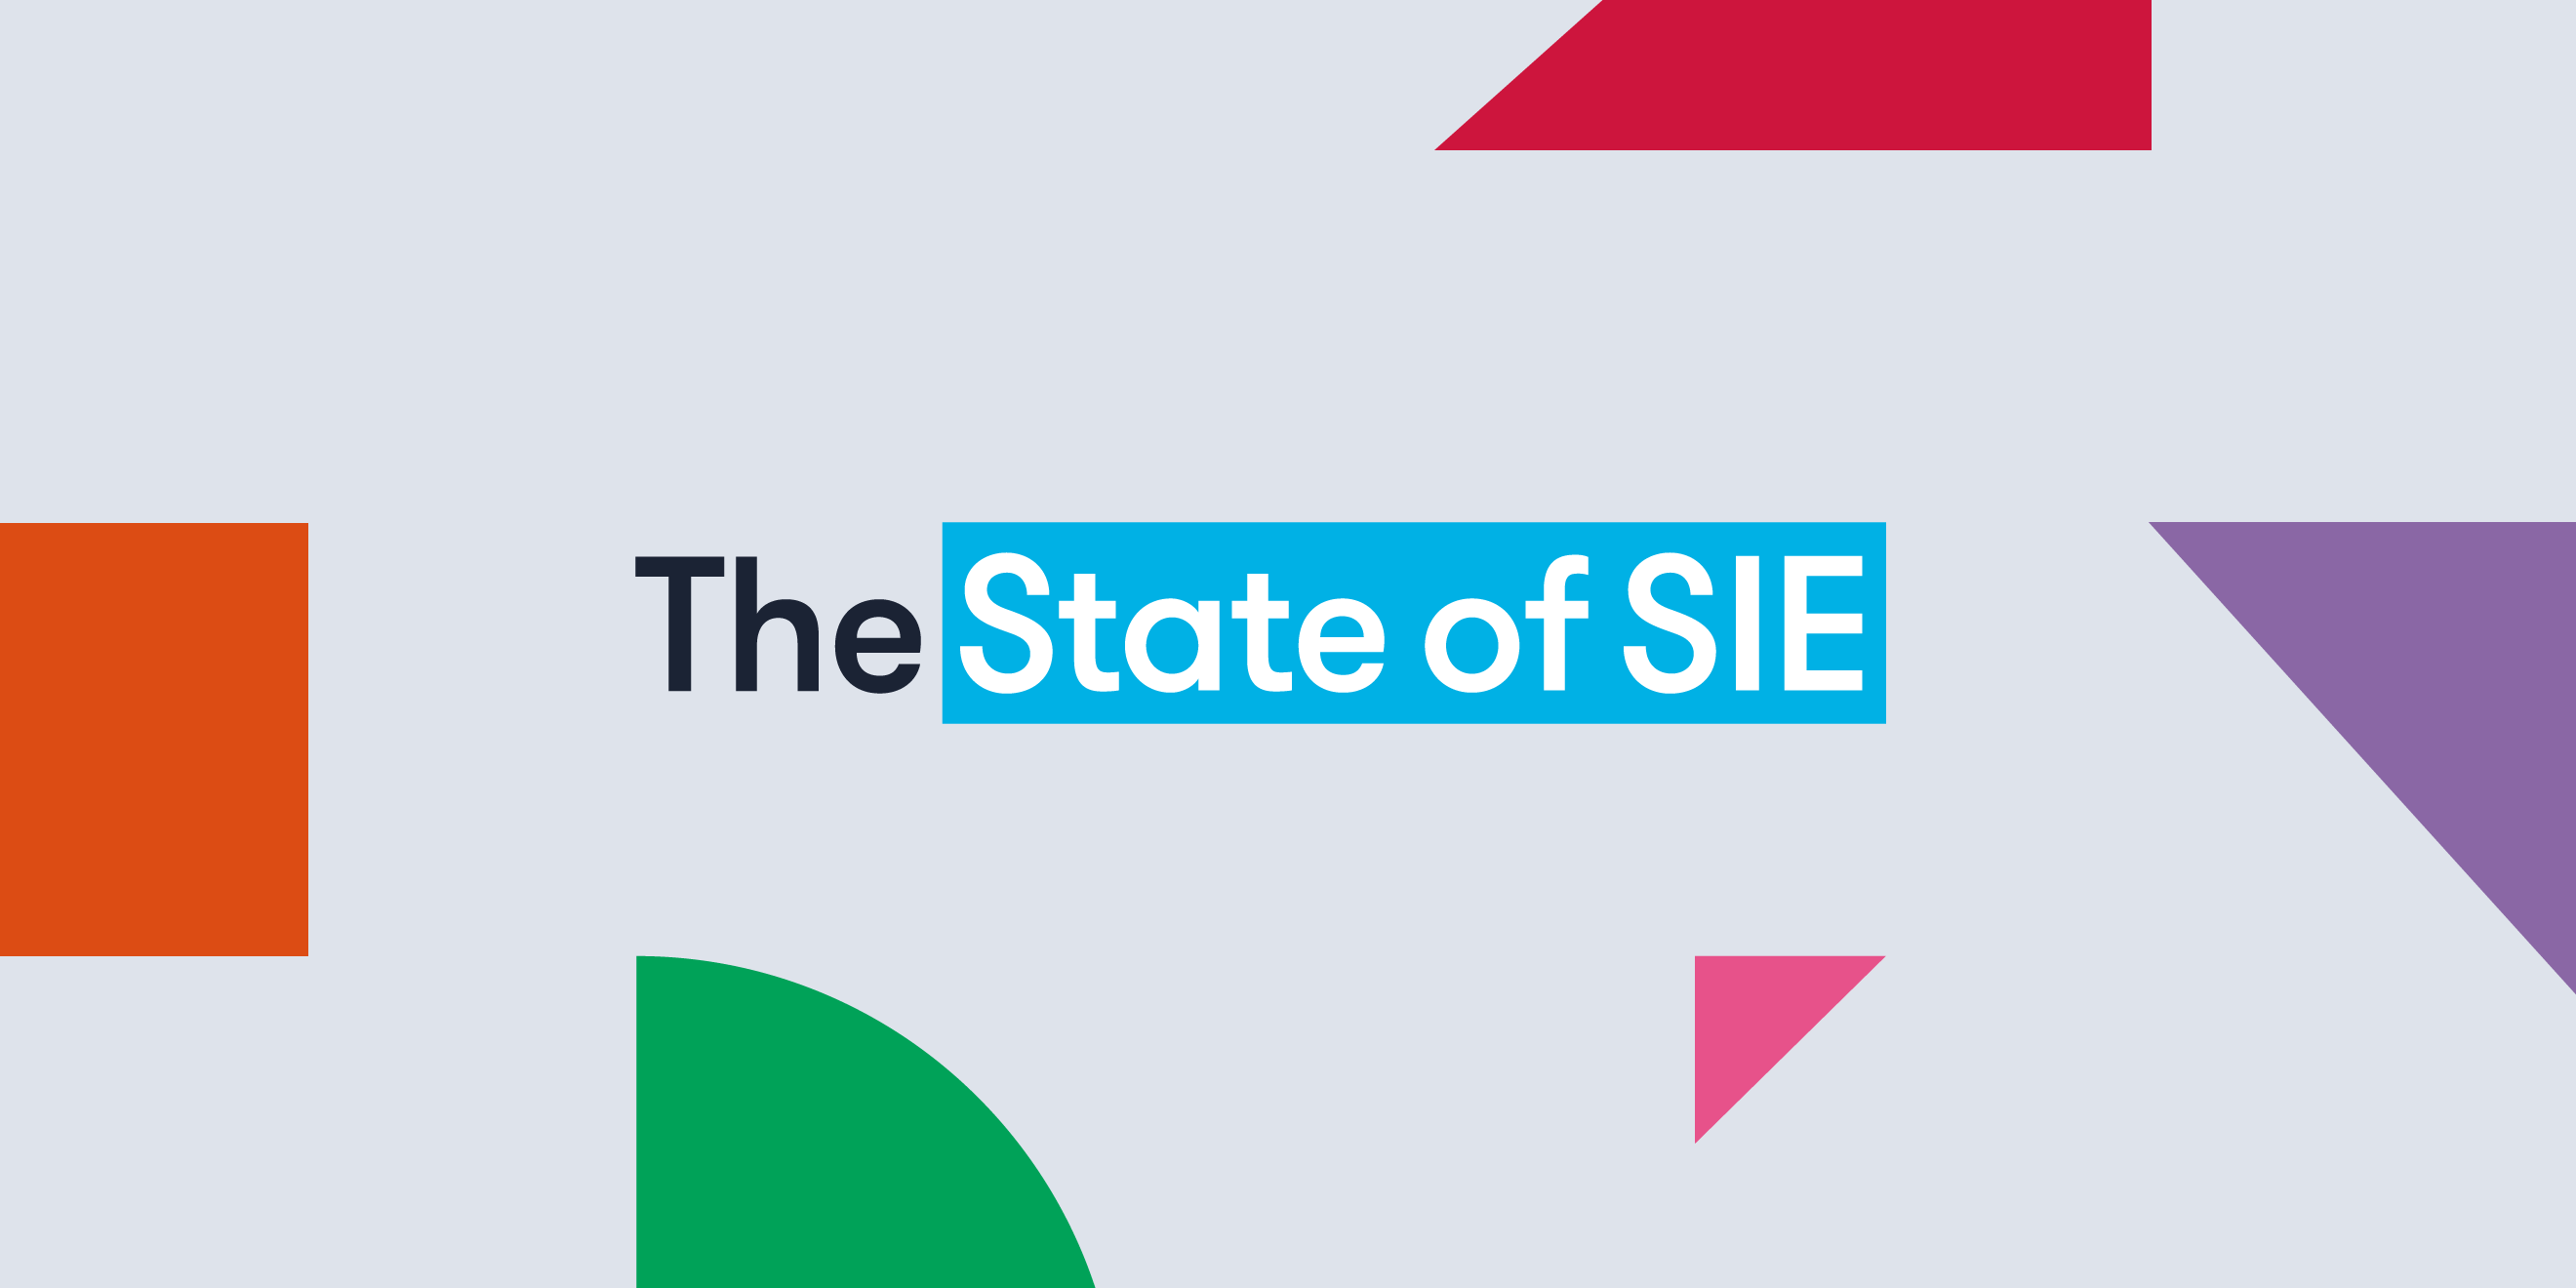 The State of SIE identity